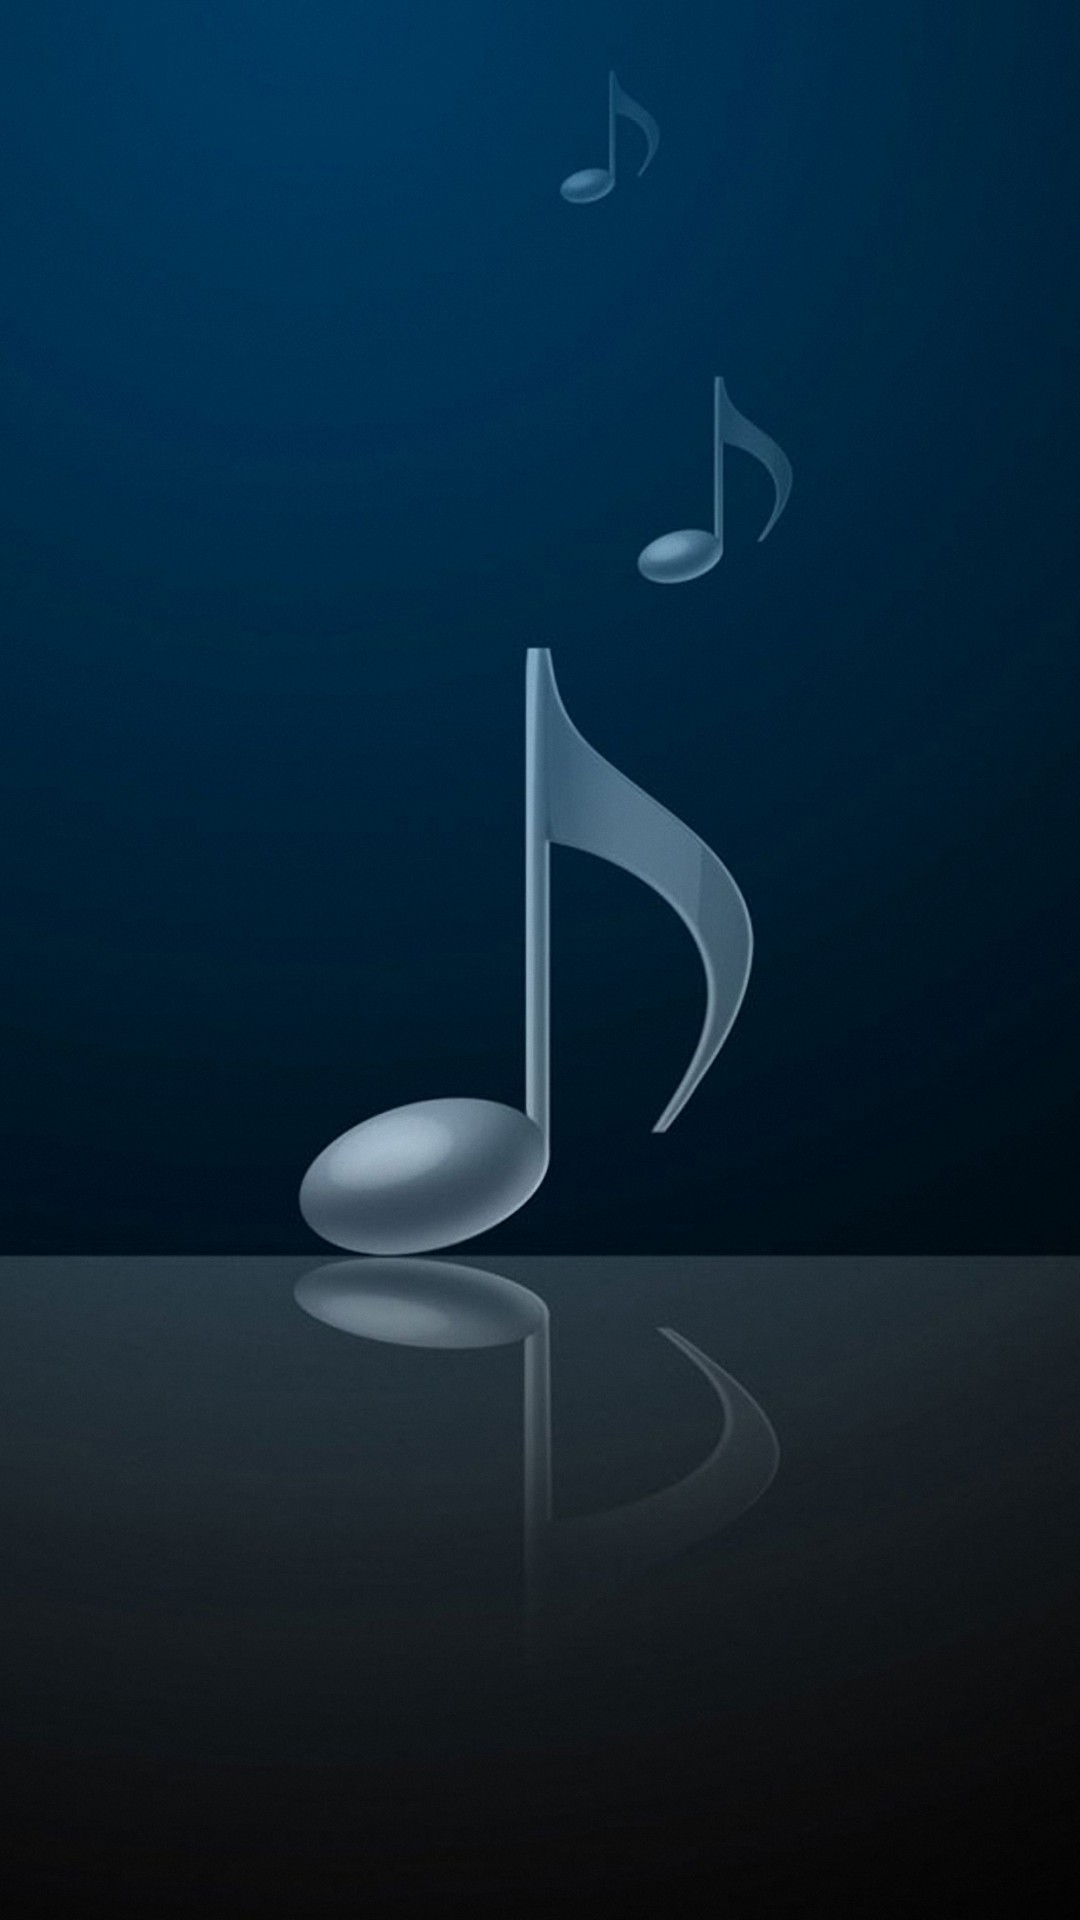 blue music notes wallpaper 64 images